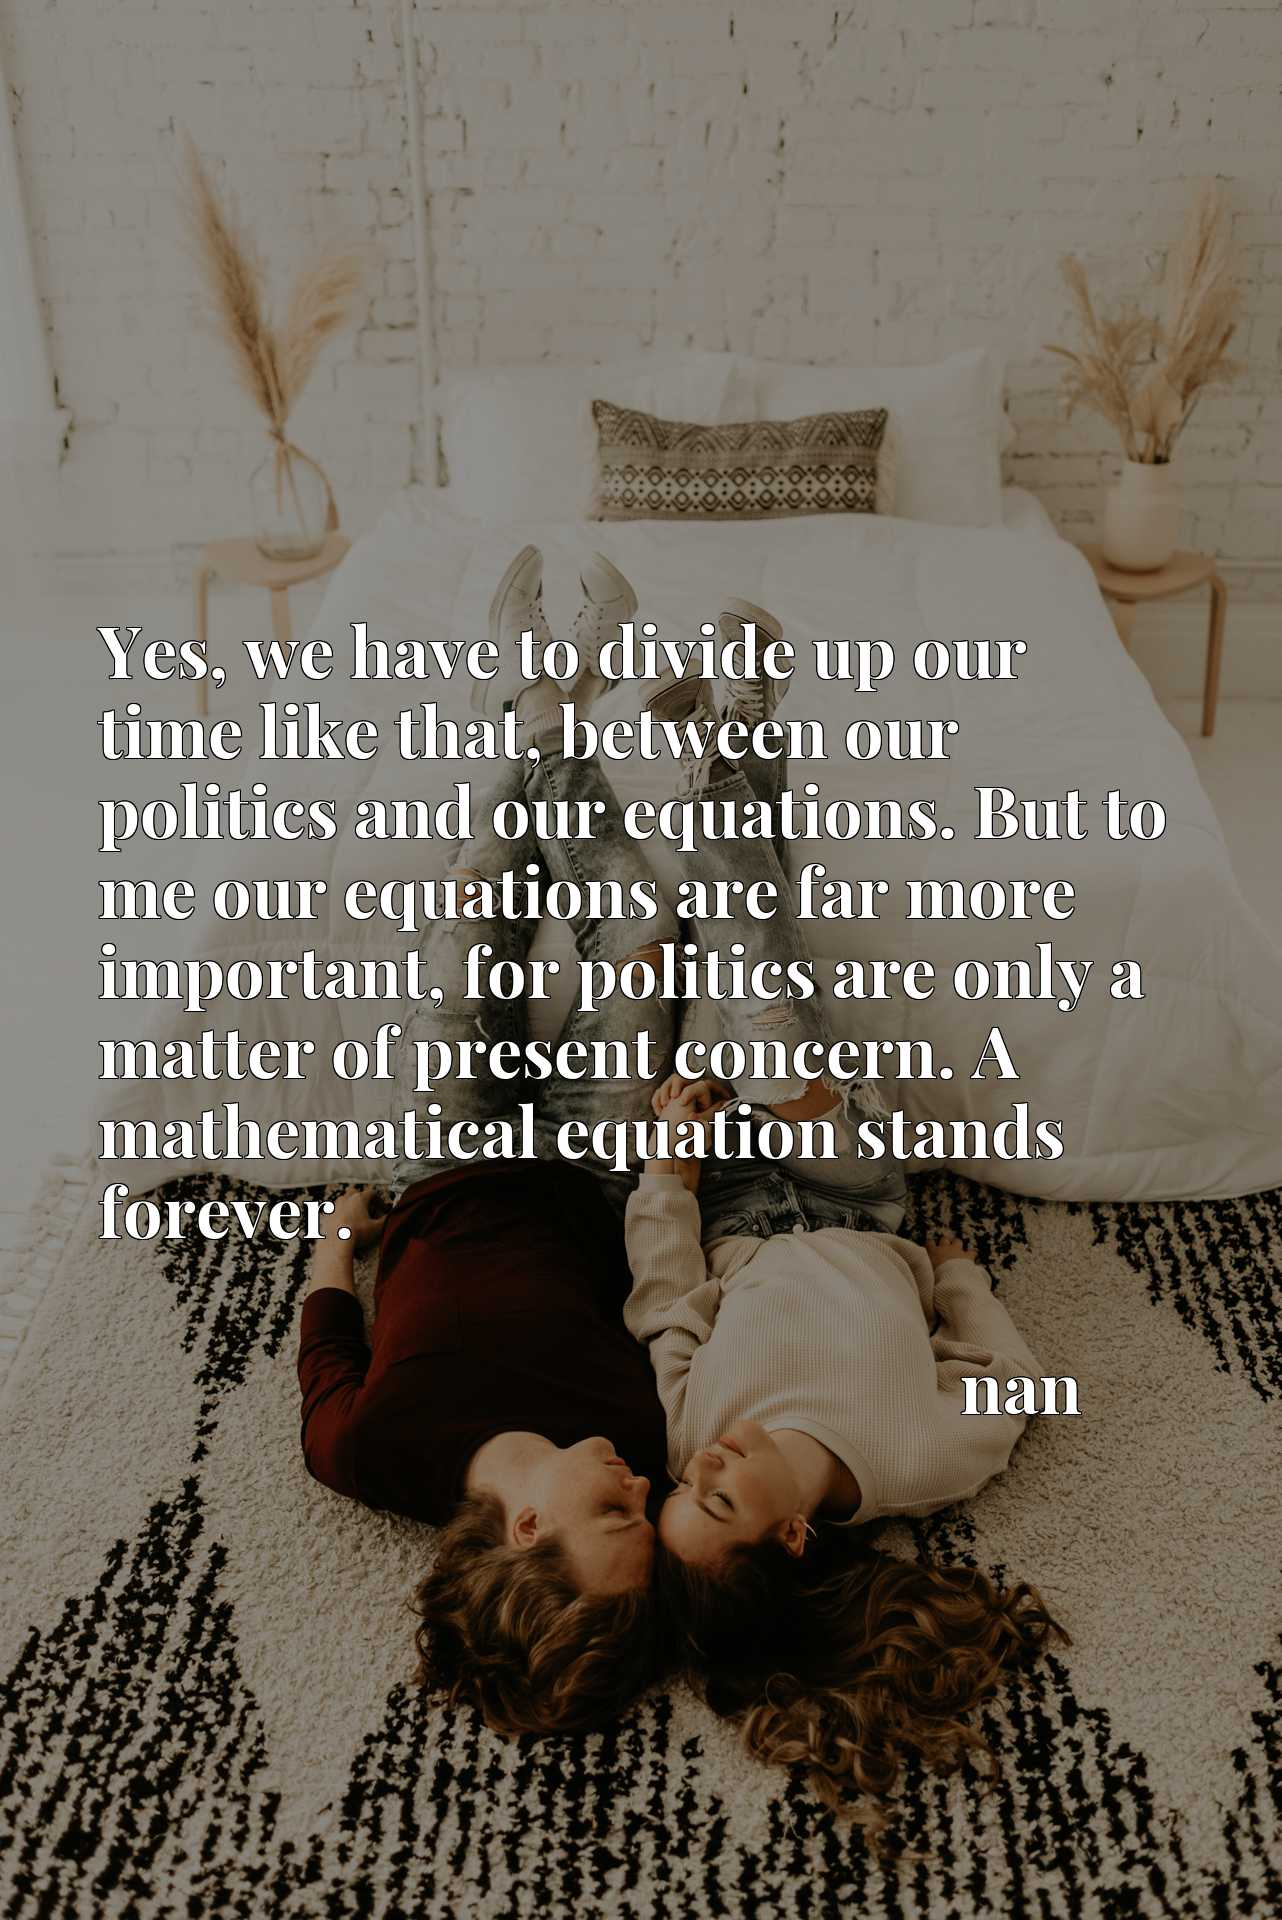 Yes, we have to divide up our time like that, between our politics and our equations. But to me our equations are far more important, for politics are only a matter of present concern. A mathematical equation stands forever.